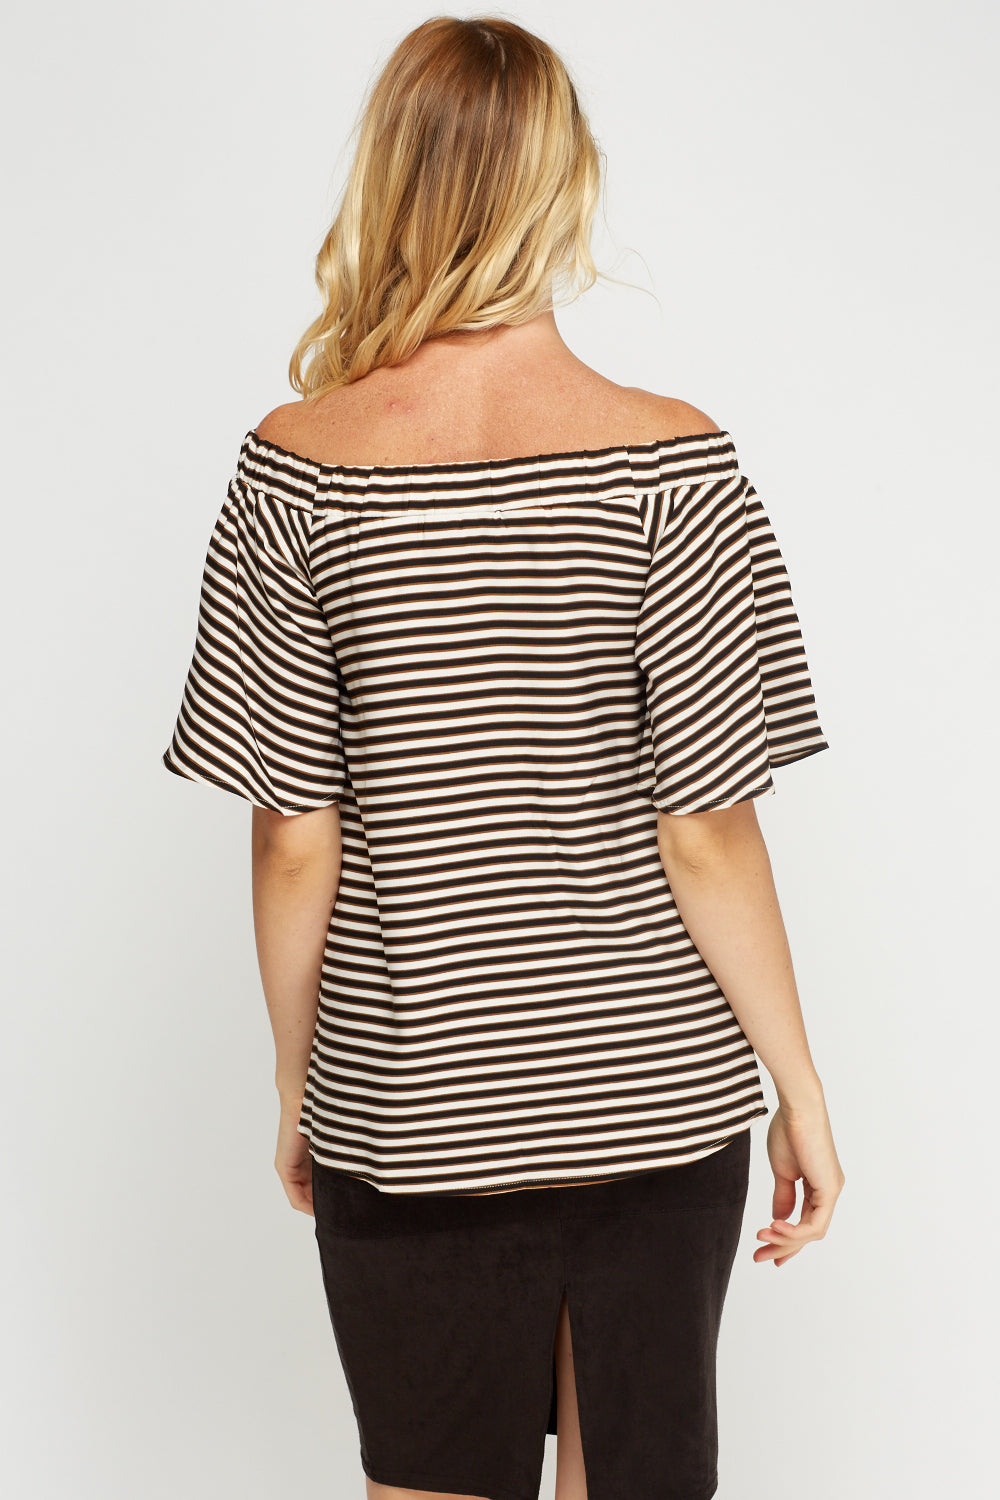 Top de rayas off shoulder - MiTiendaSecreta